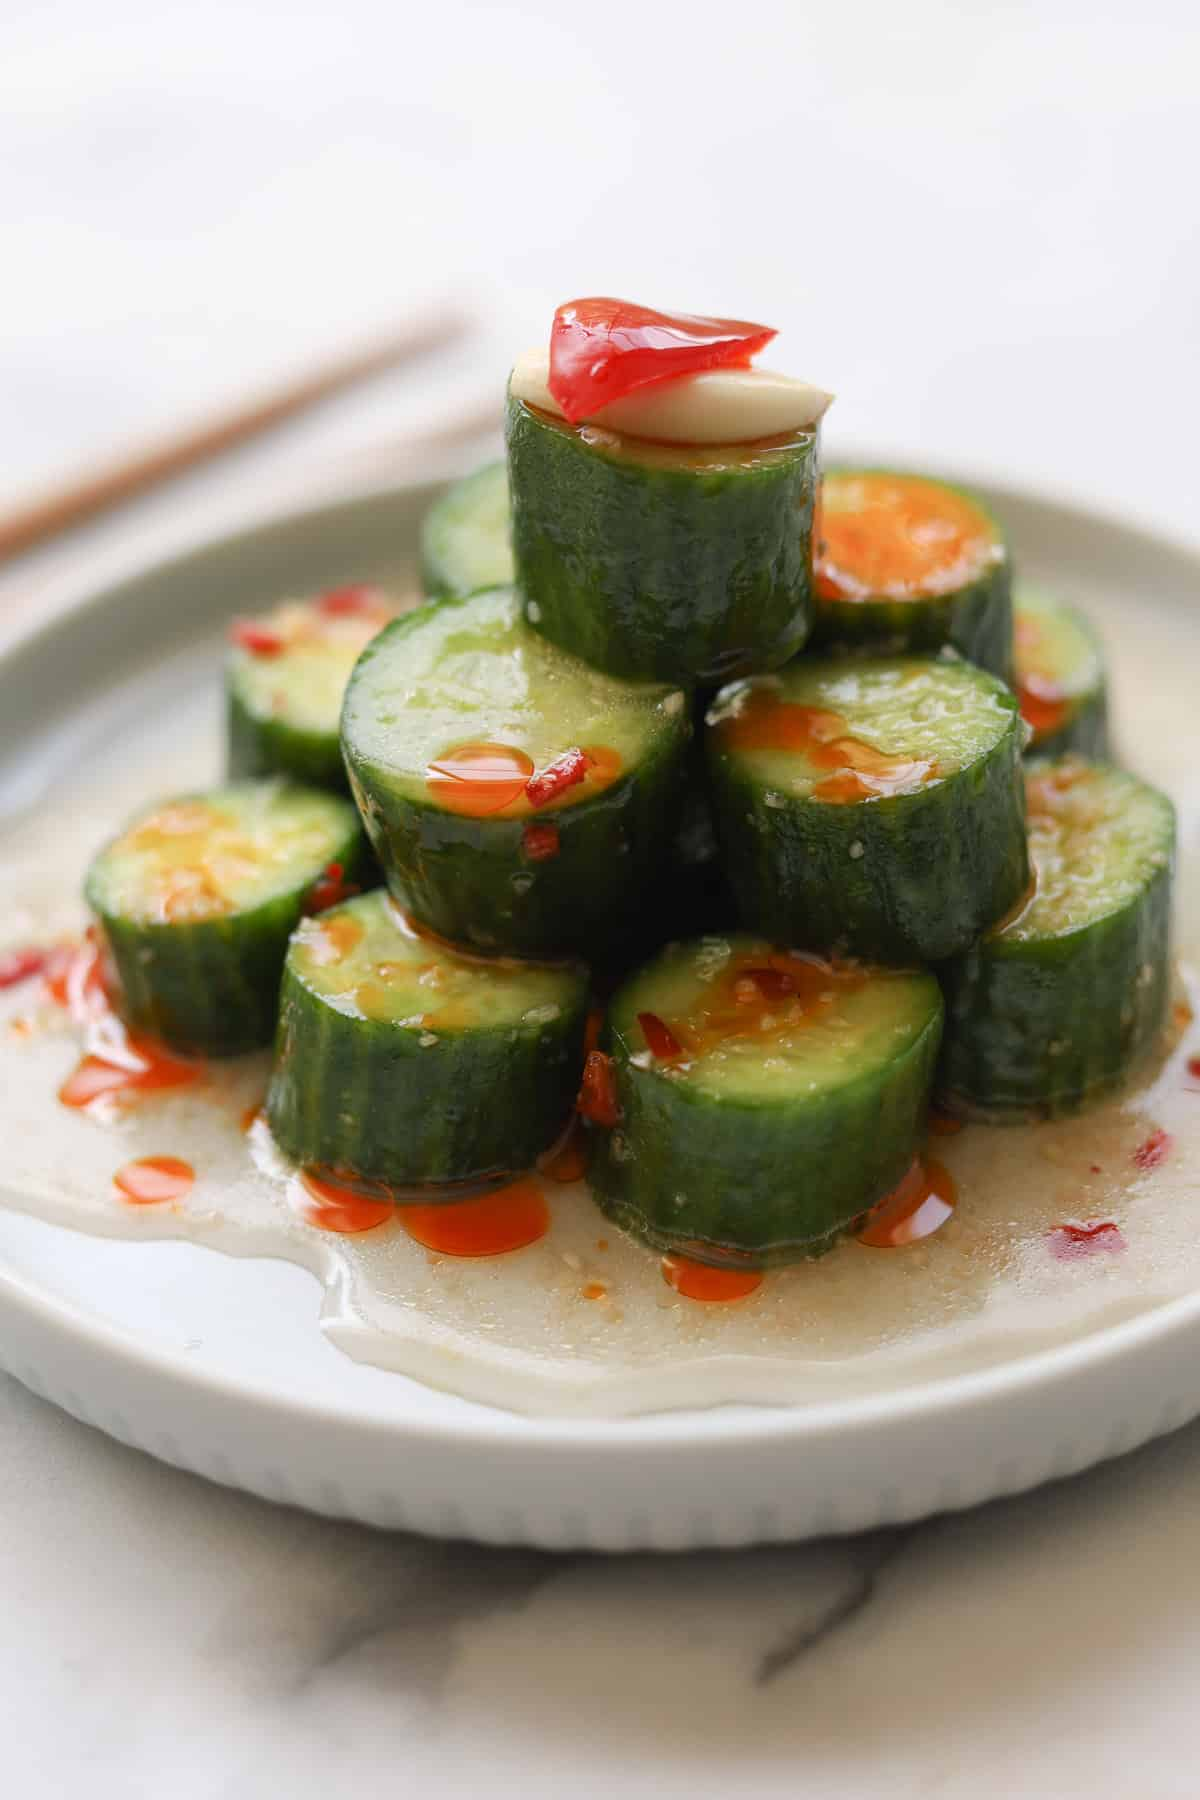 Sliced cucumbers stacked on a plate with sauce.